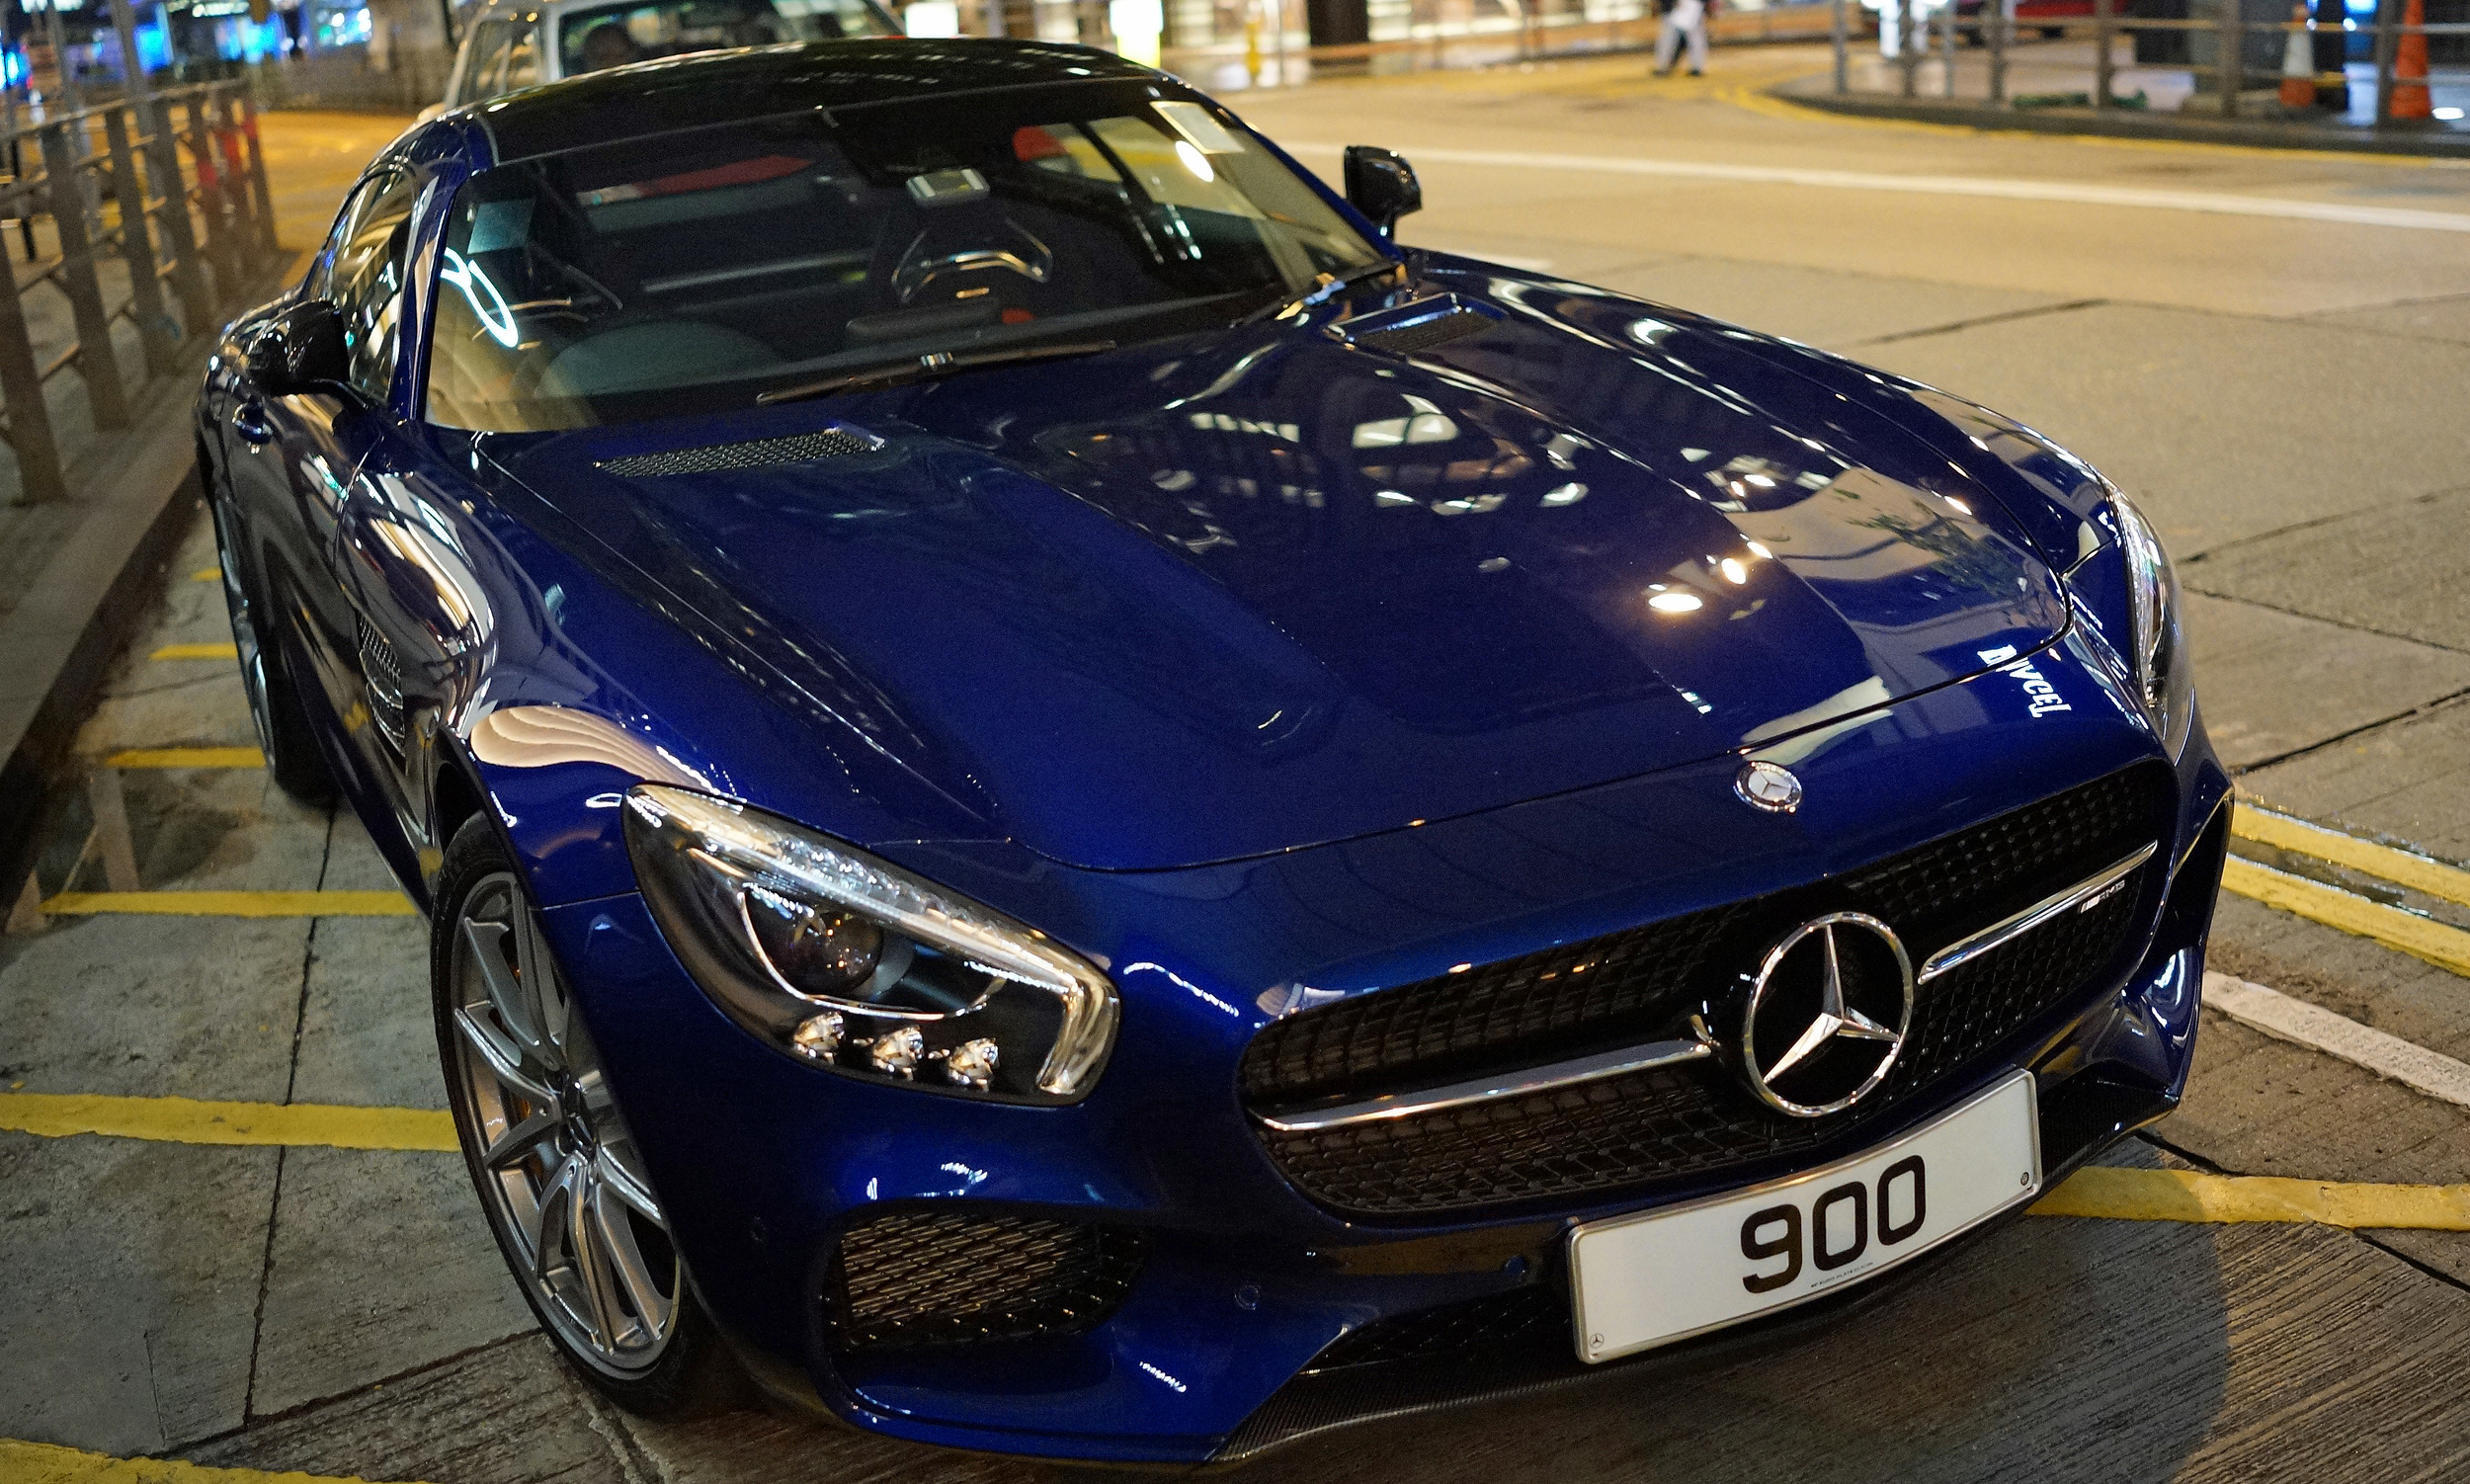 Same car different colour, this is one beast of a car and I have now seen it in 3 colours - this Mercedes Benz AMG GT S is one amazing car and this one has a very lucky number plate.